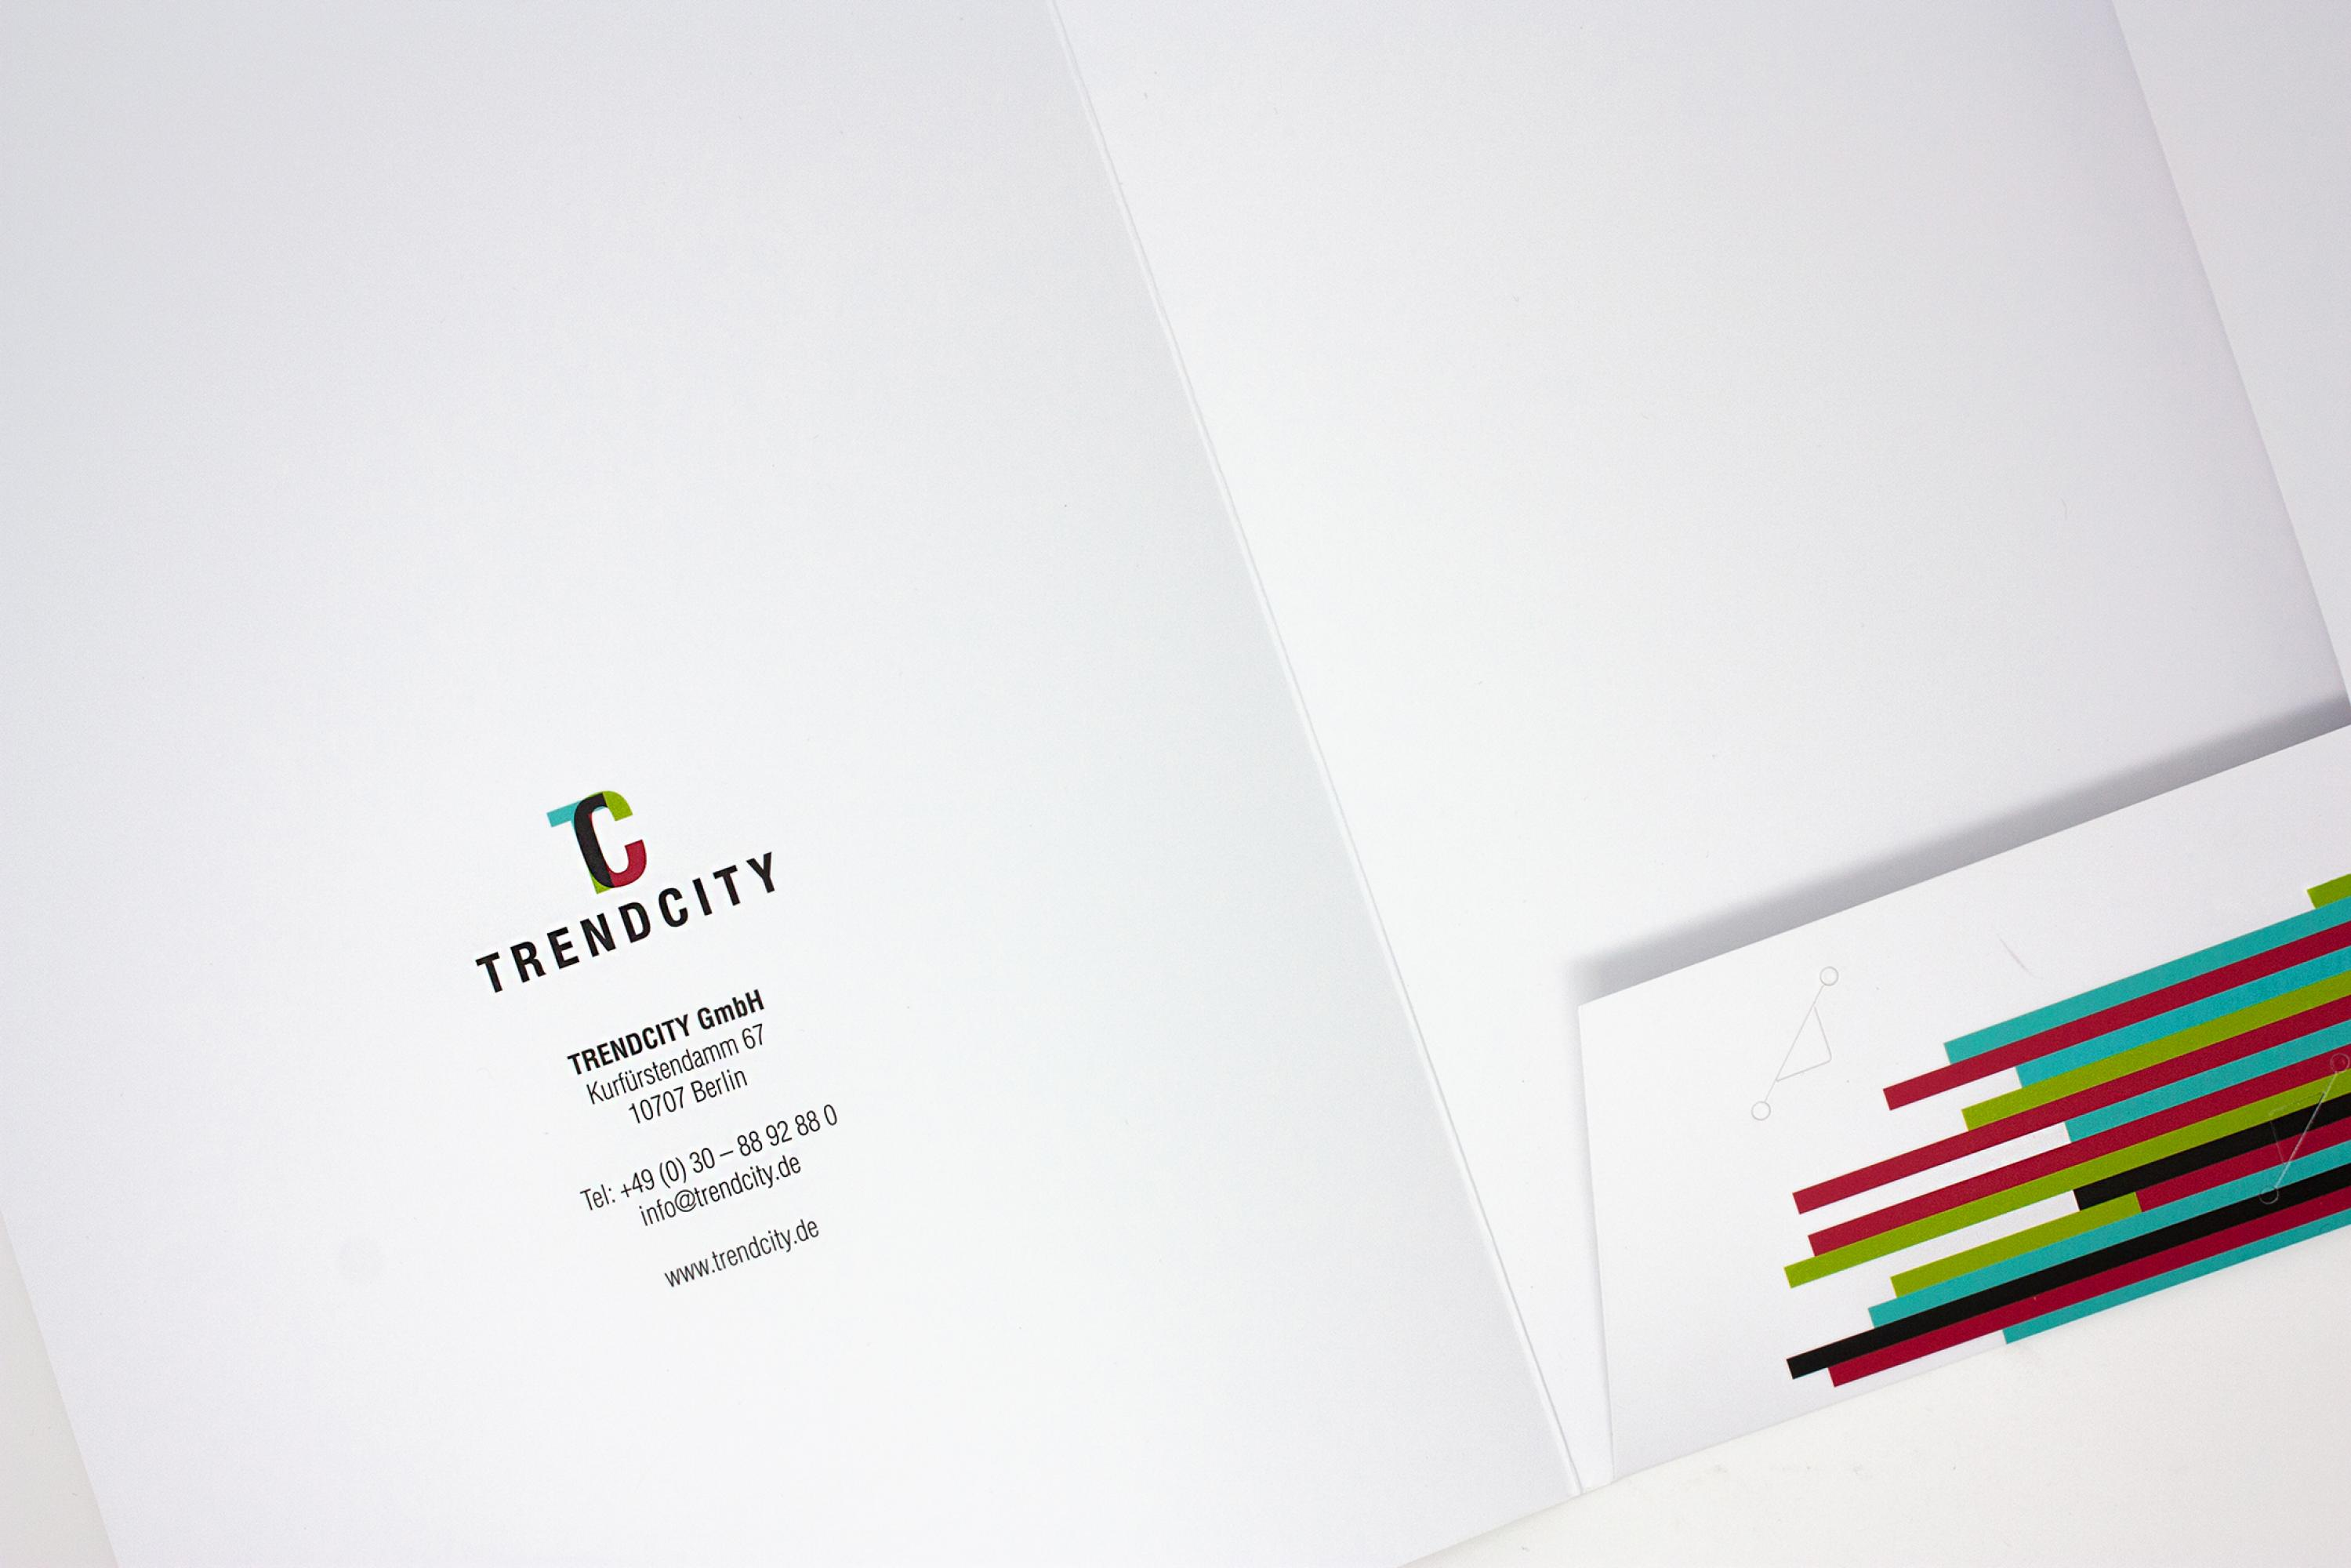 Praesentationsmappen-trendcity-immobilien-formlos-corporate-design-print-6